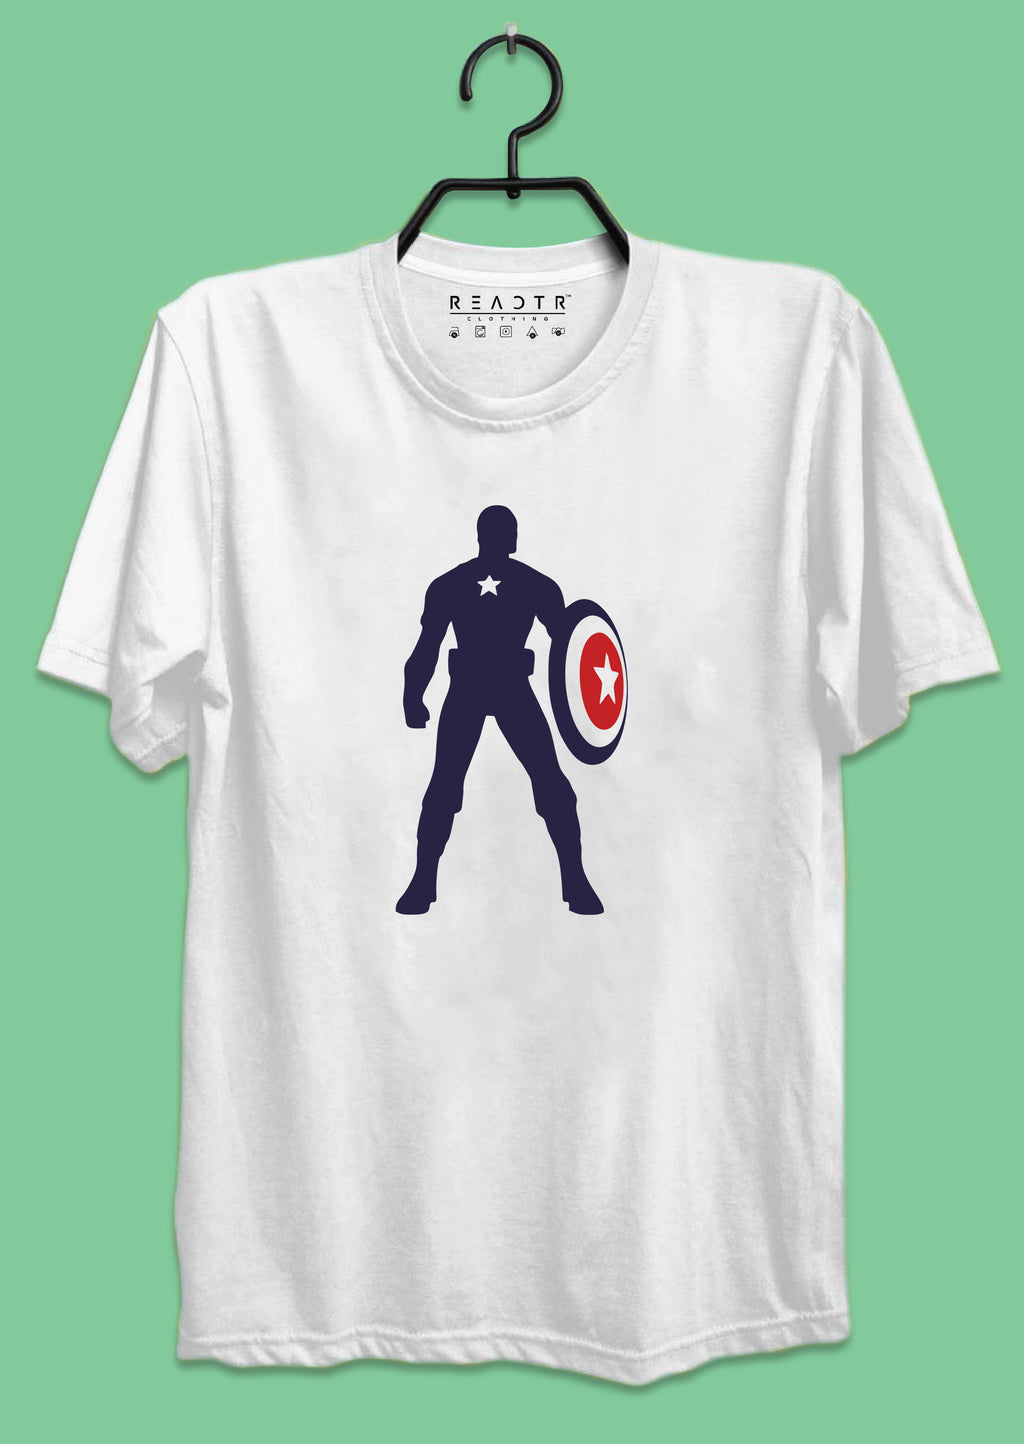 Captain America Reactr Tshirs For Men - Eyewearlabs